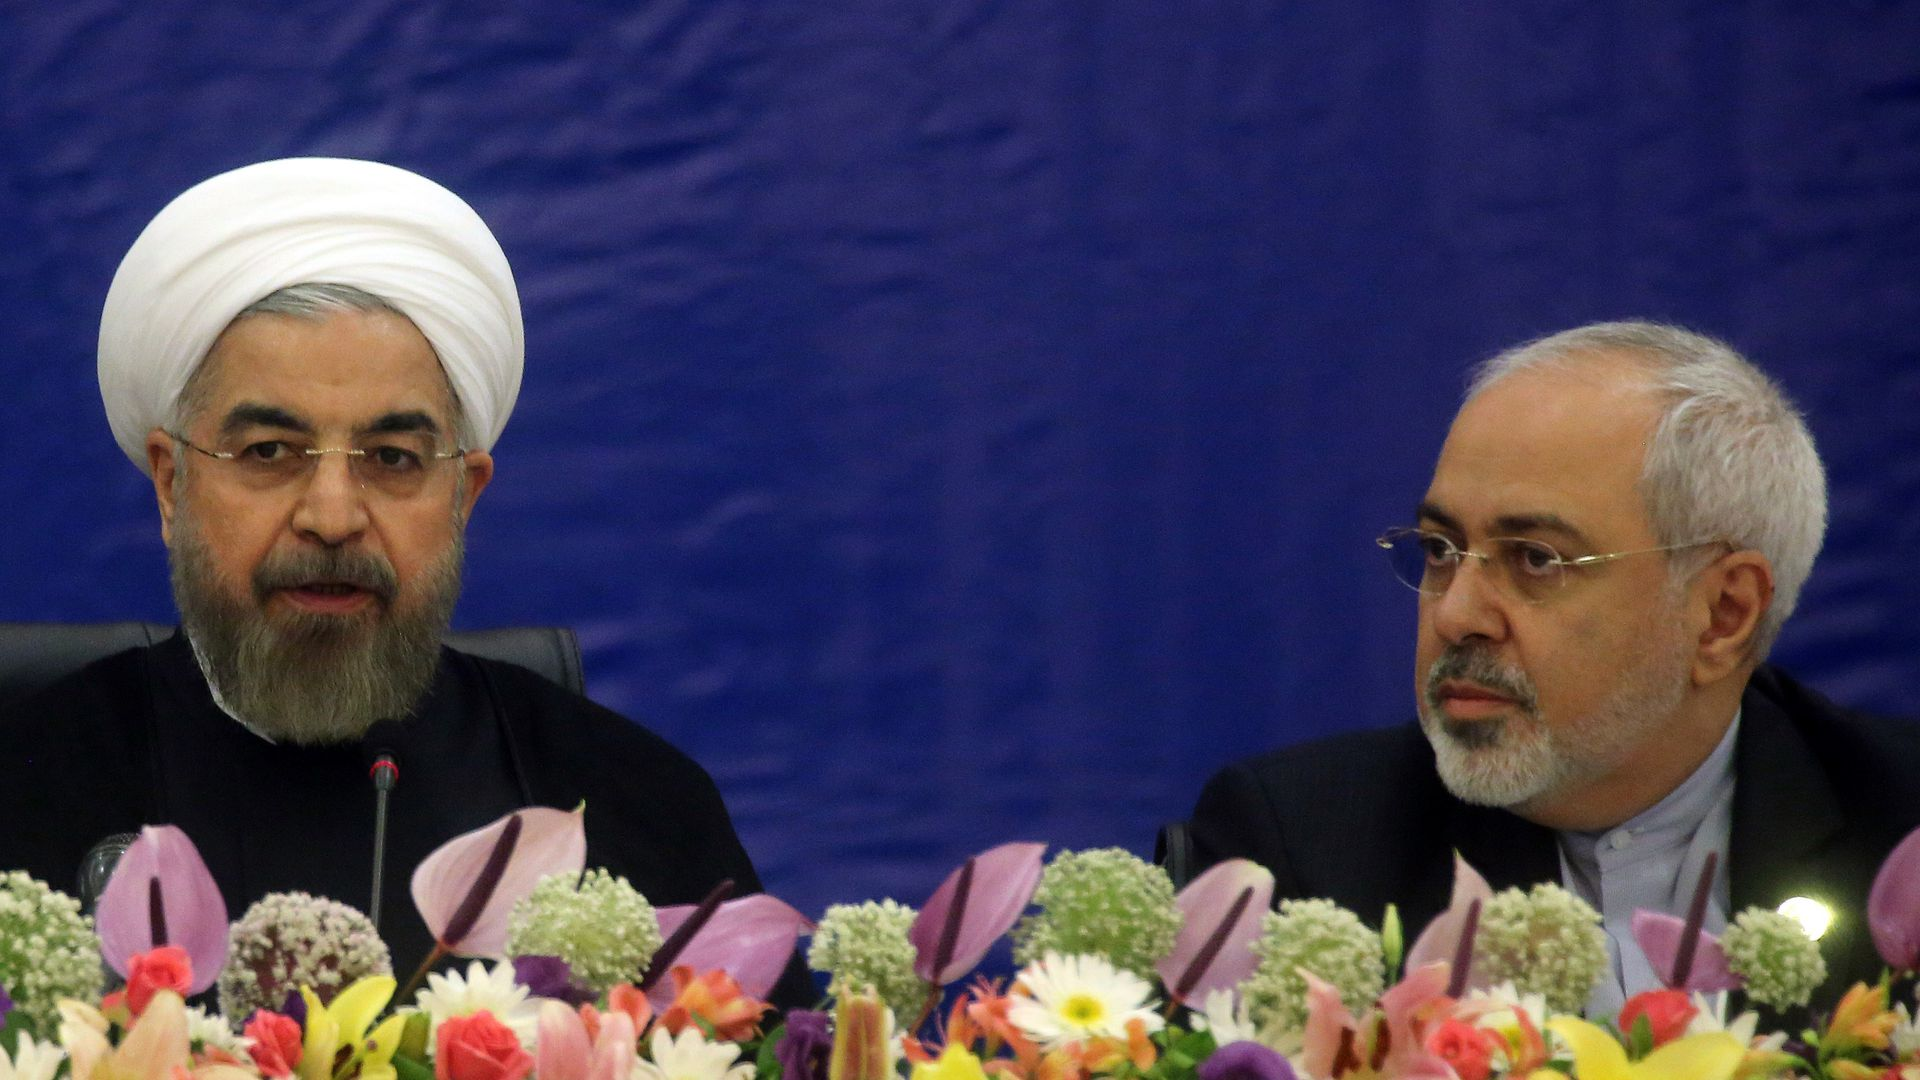 Iranian President Hassan Rouhani and Foreign Minister Javad Zarif